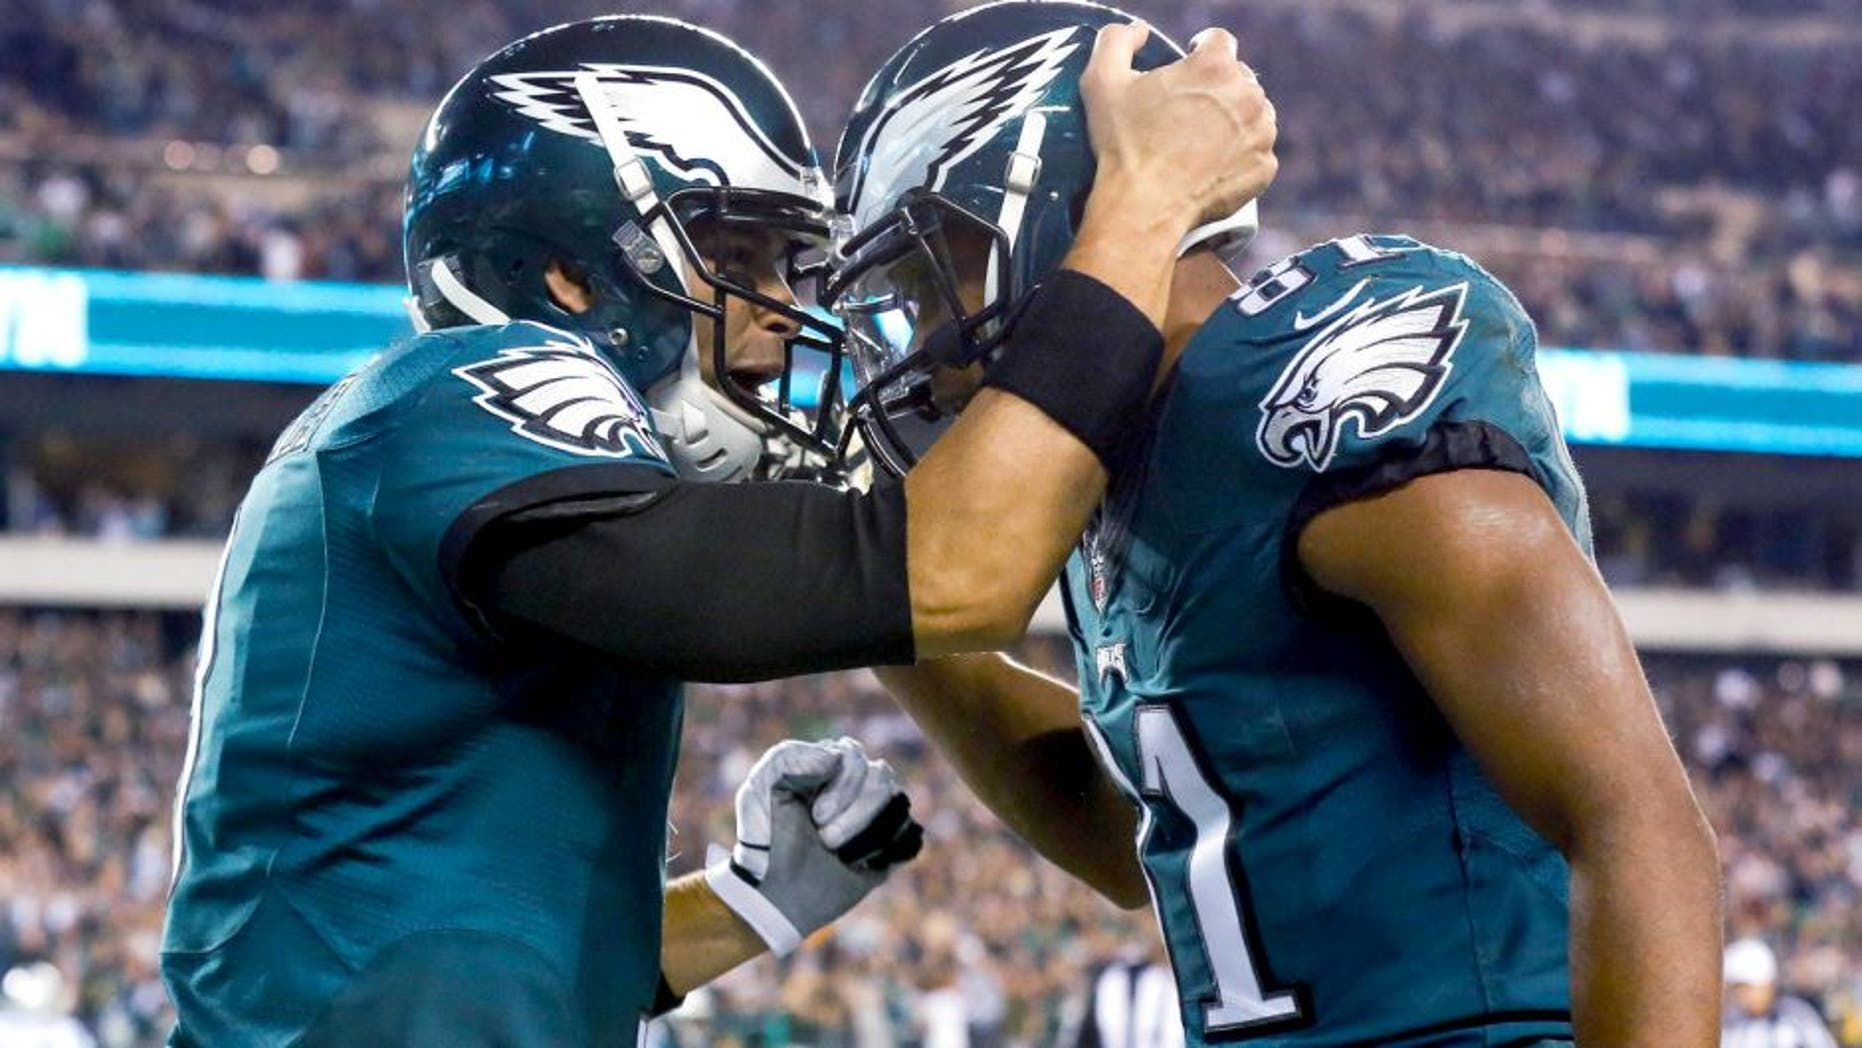 Nov 10, 2014; Philadelphia, PA, USA; Philadelphia Eagles quarterback Mark Sanchez (3) and wide receiver Jordan Matthews (81) celebrate their touchdown connection against the Carolina Panthers during the second quarter at Lincoln Financial Field. Mandatory Credit: Bill Streicher-USA TODAY Sports